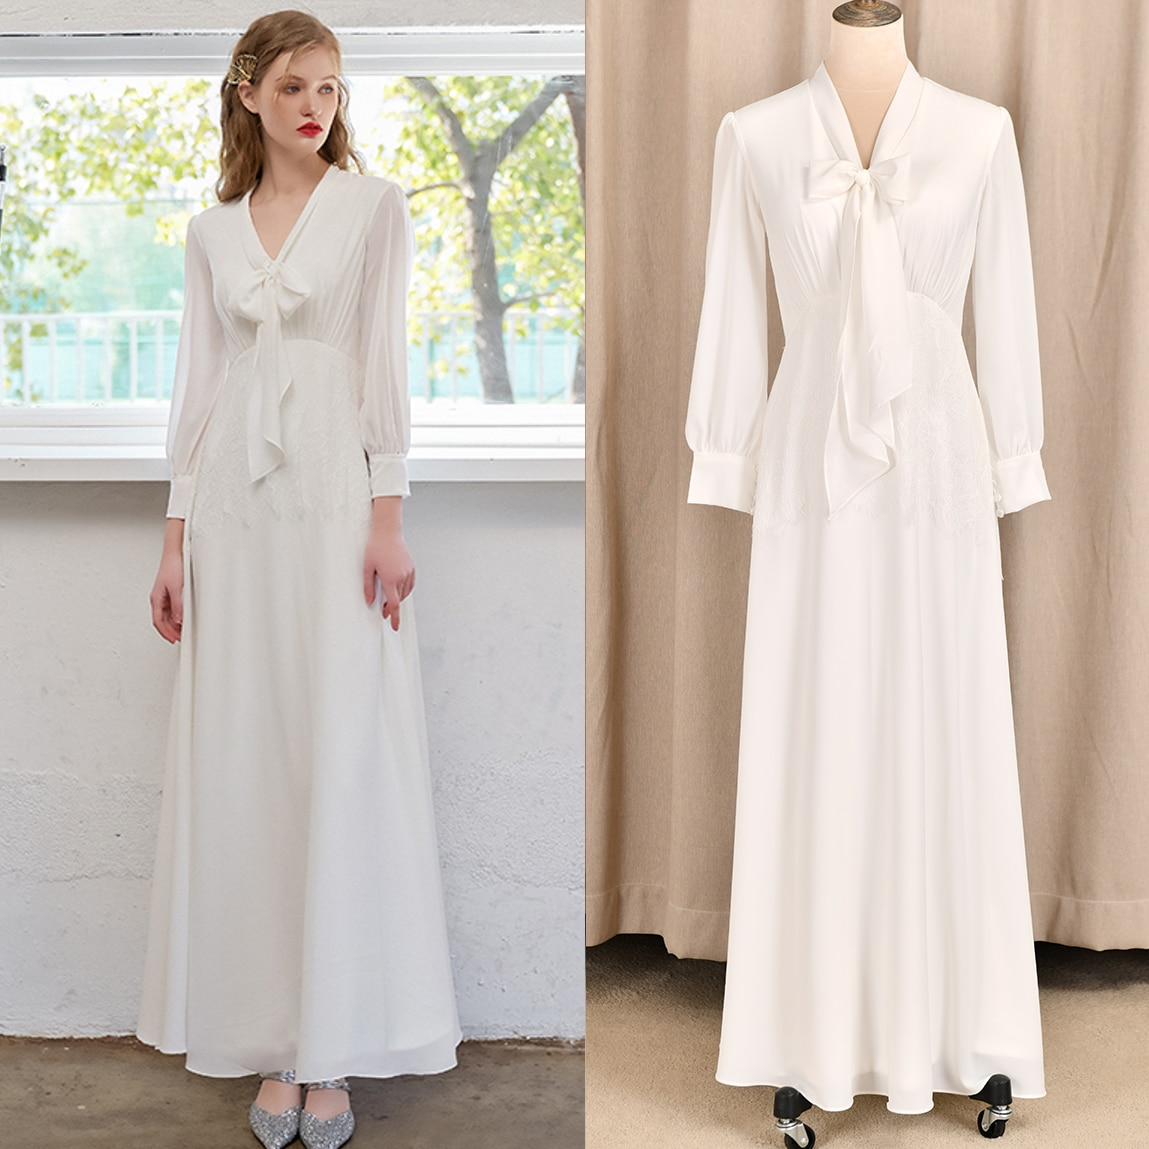 Promo Simple Chiffon Wedding Bridal Gown Ribbon Long Sleeve Lace 2021 A Line V Neck Formal Bridesmaid Engagement Toast Dress 4164#